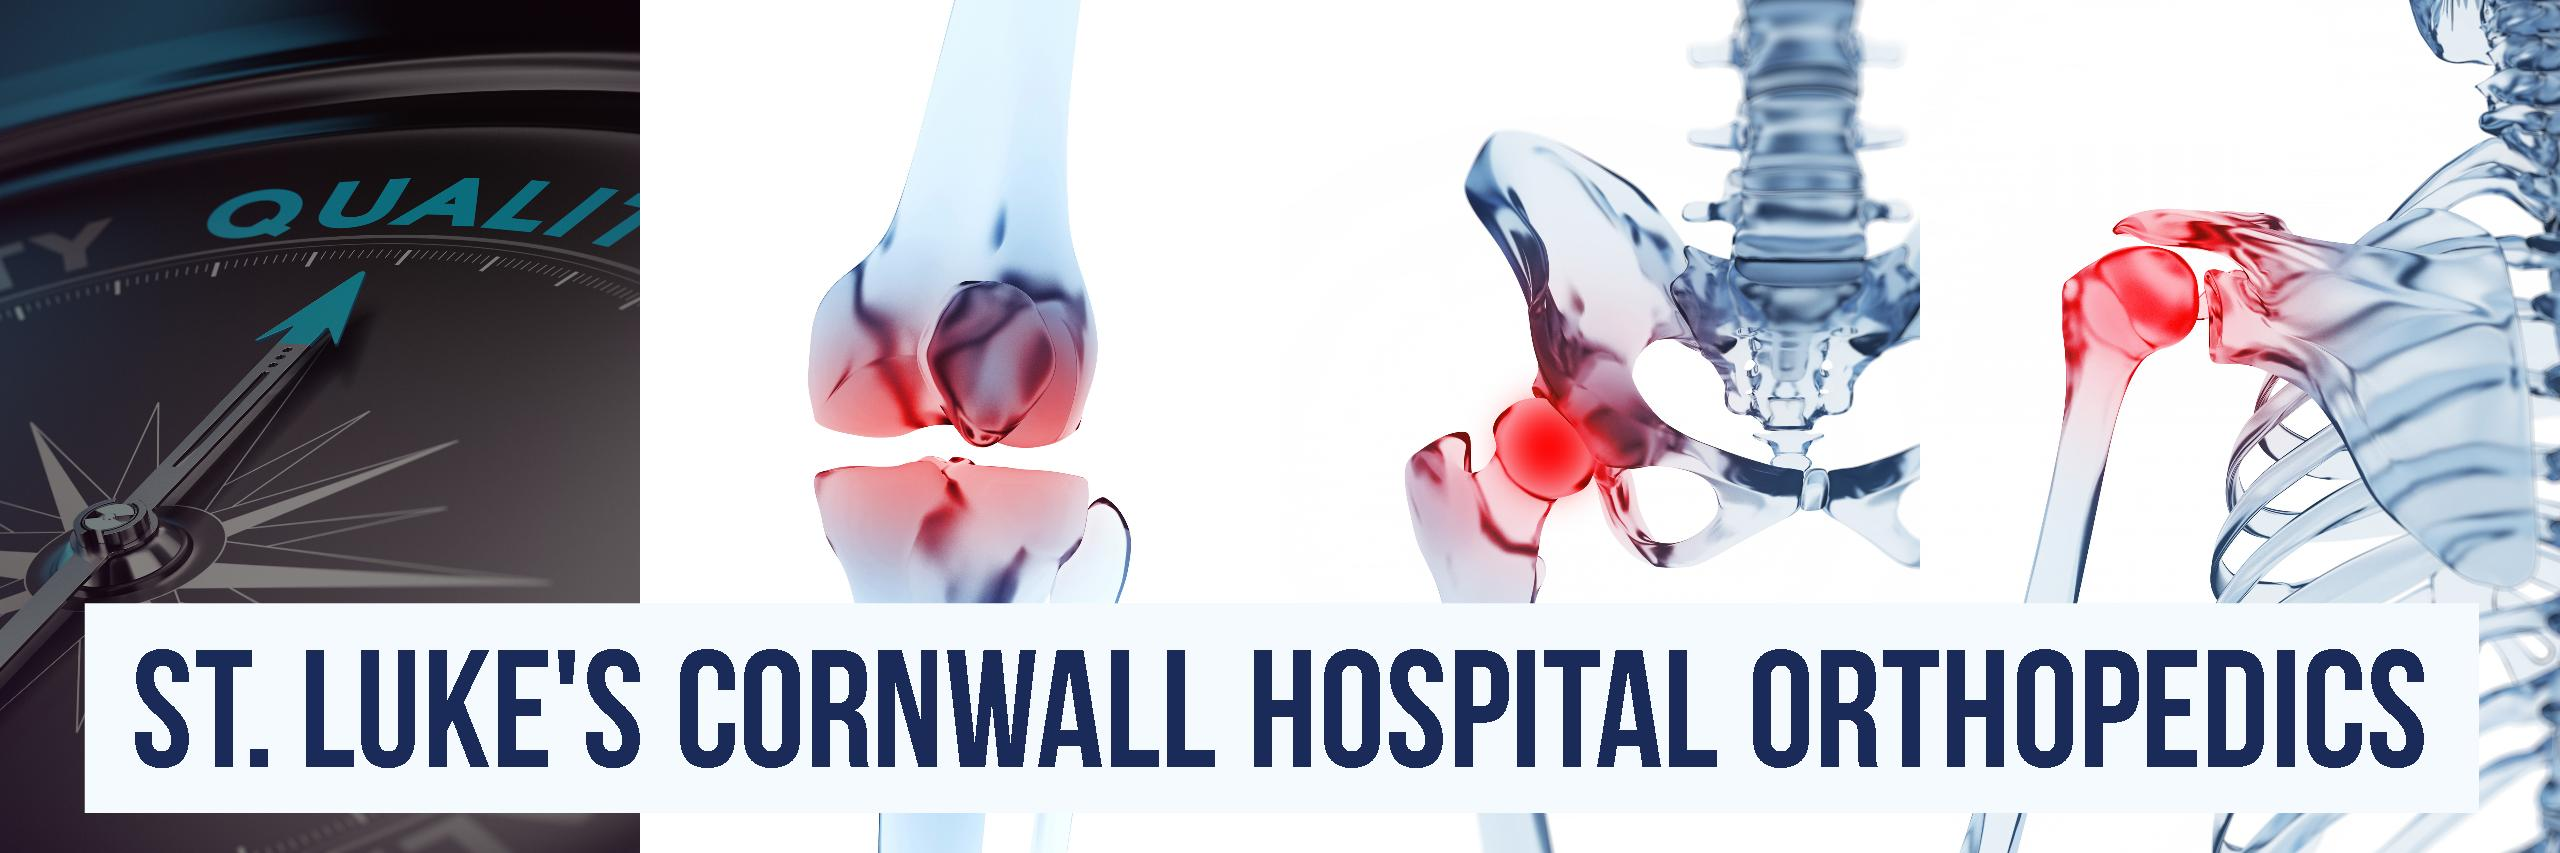 banner image with joints for orthopedics